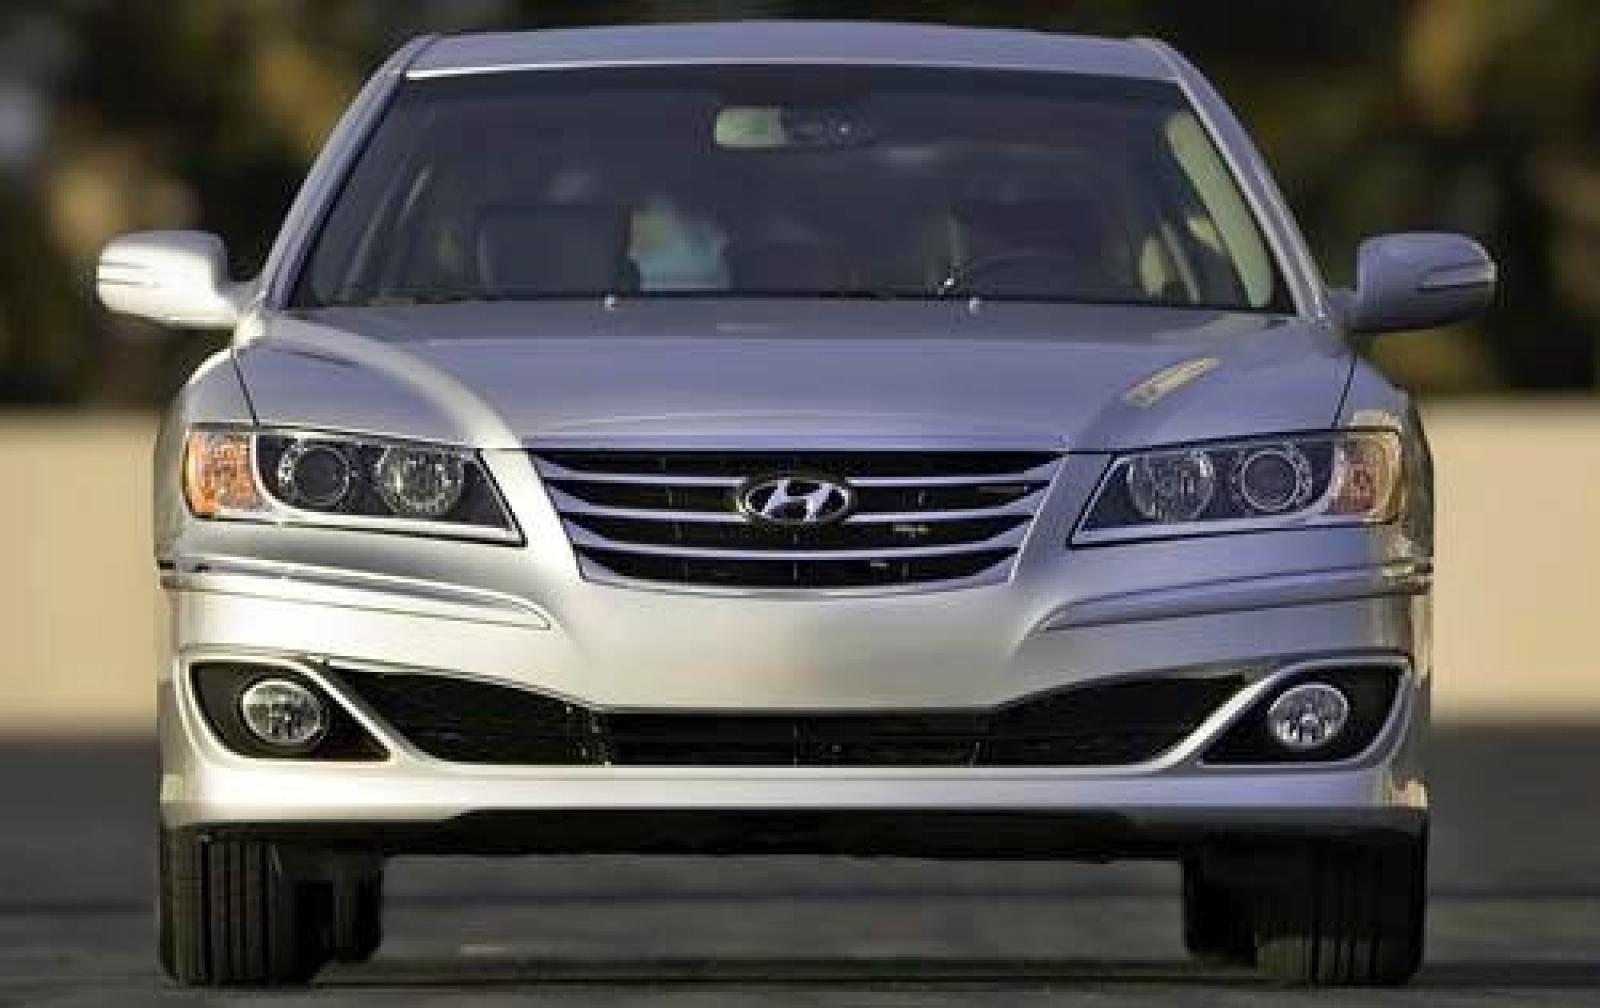 2011 Hyundai Azera Information And Photos Zombiedrive